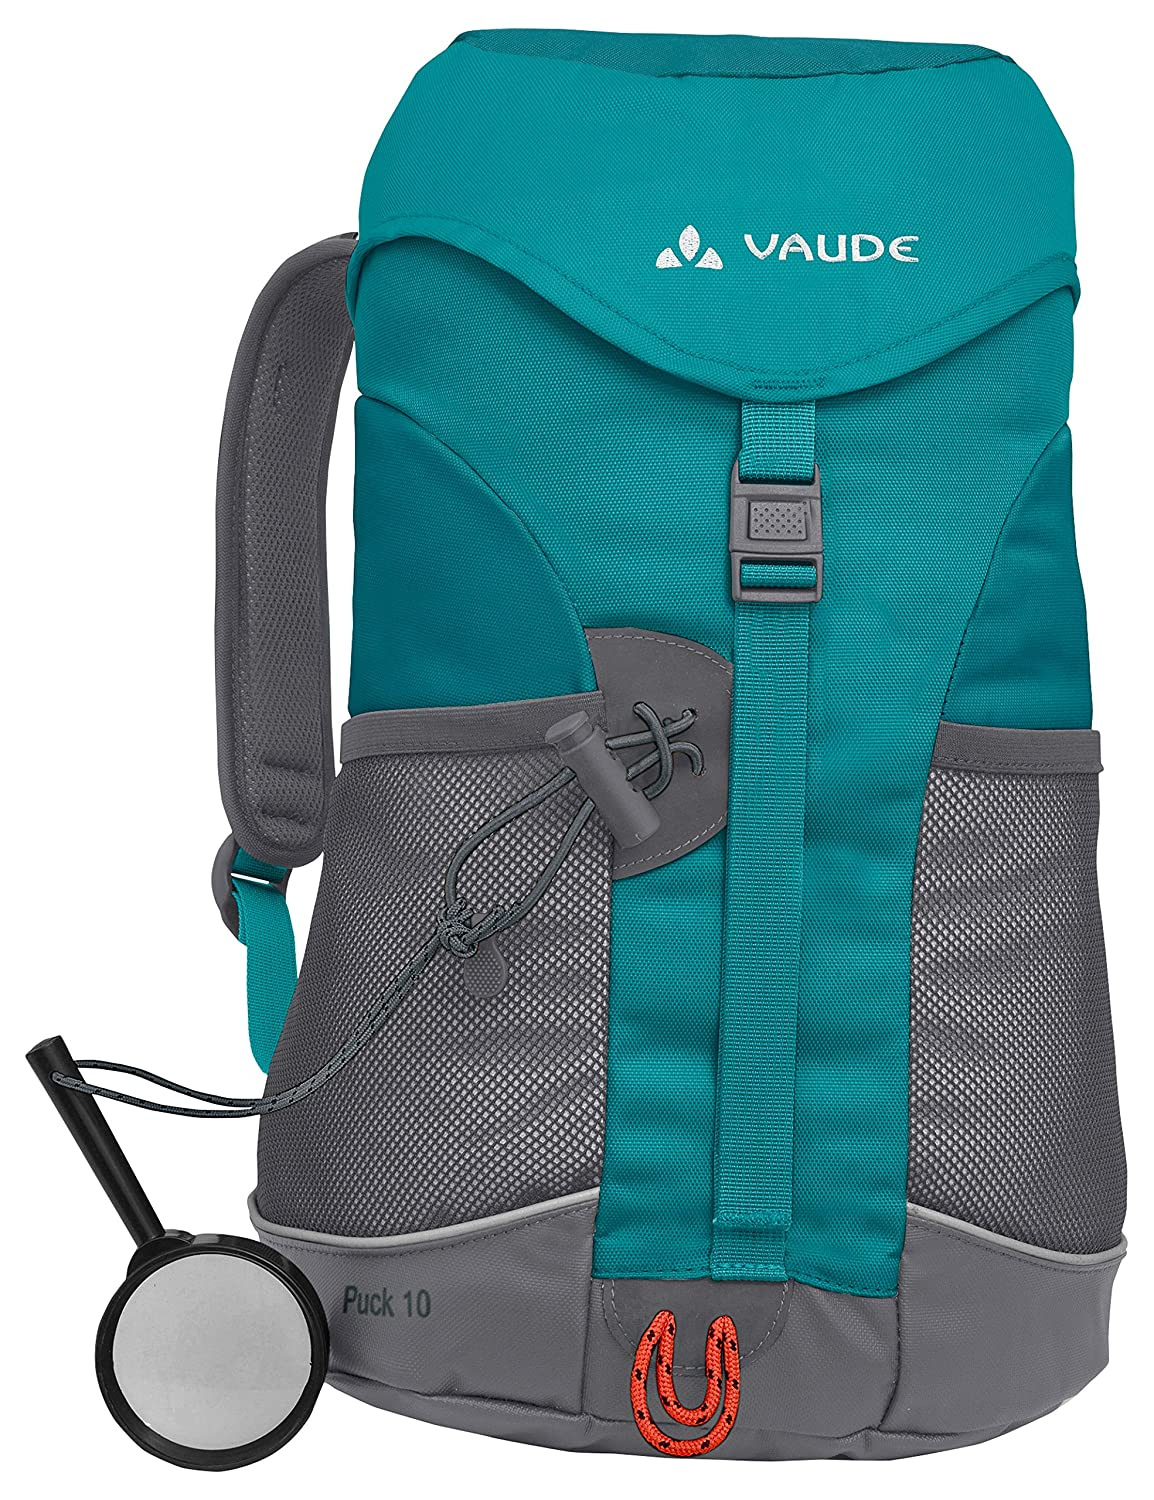 Vaude Kinderrucksack Puck 10 - Kinder Backpack